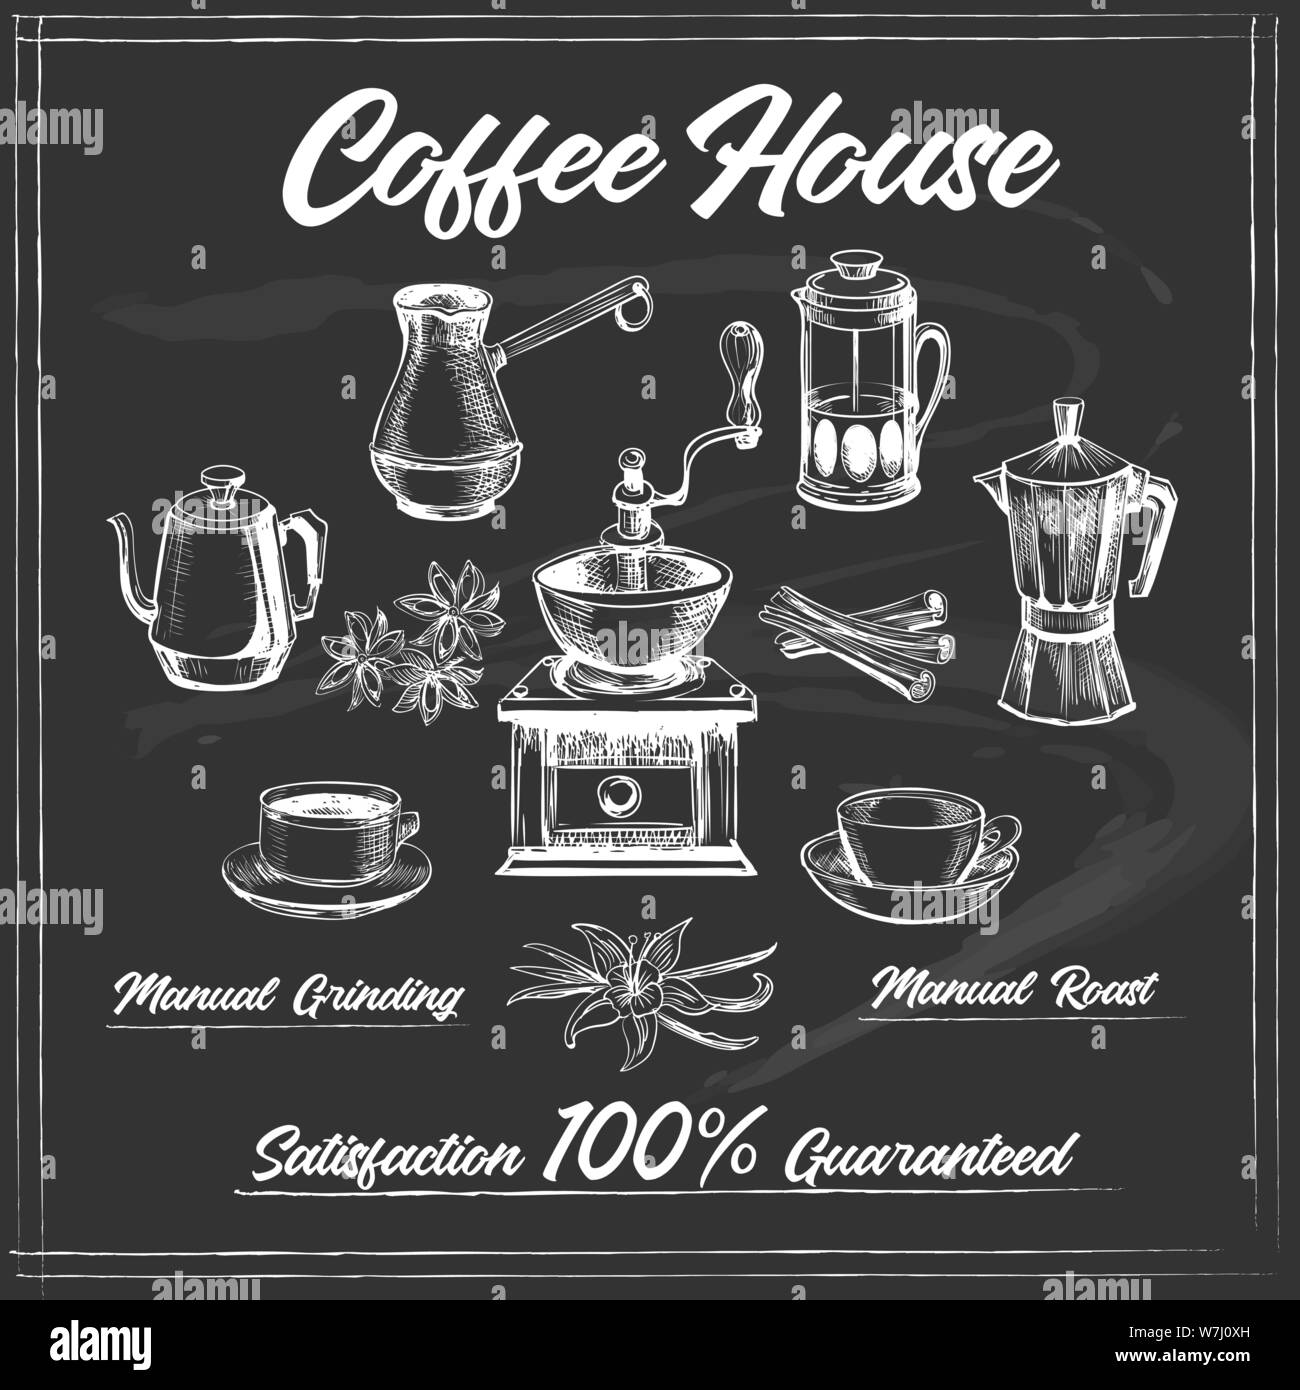 Coffee House Poster On Chalk Board Coffeeshop Decor Design Like Old Black Chalkboard Posters Vector Illustration Stock Vector Image Art Alamy